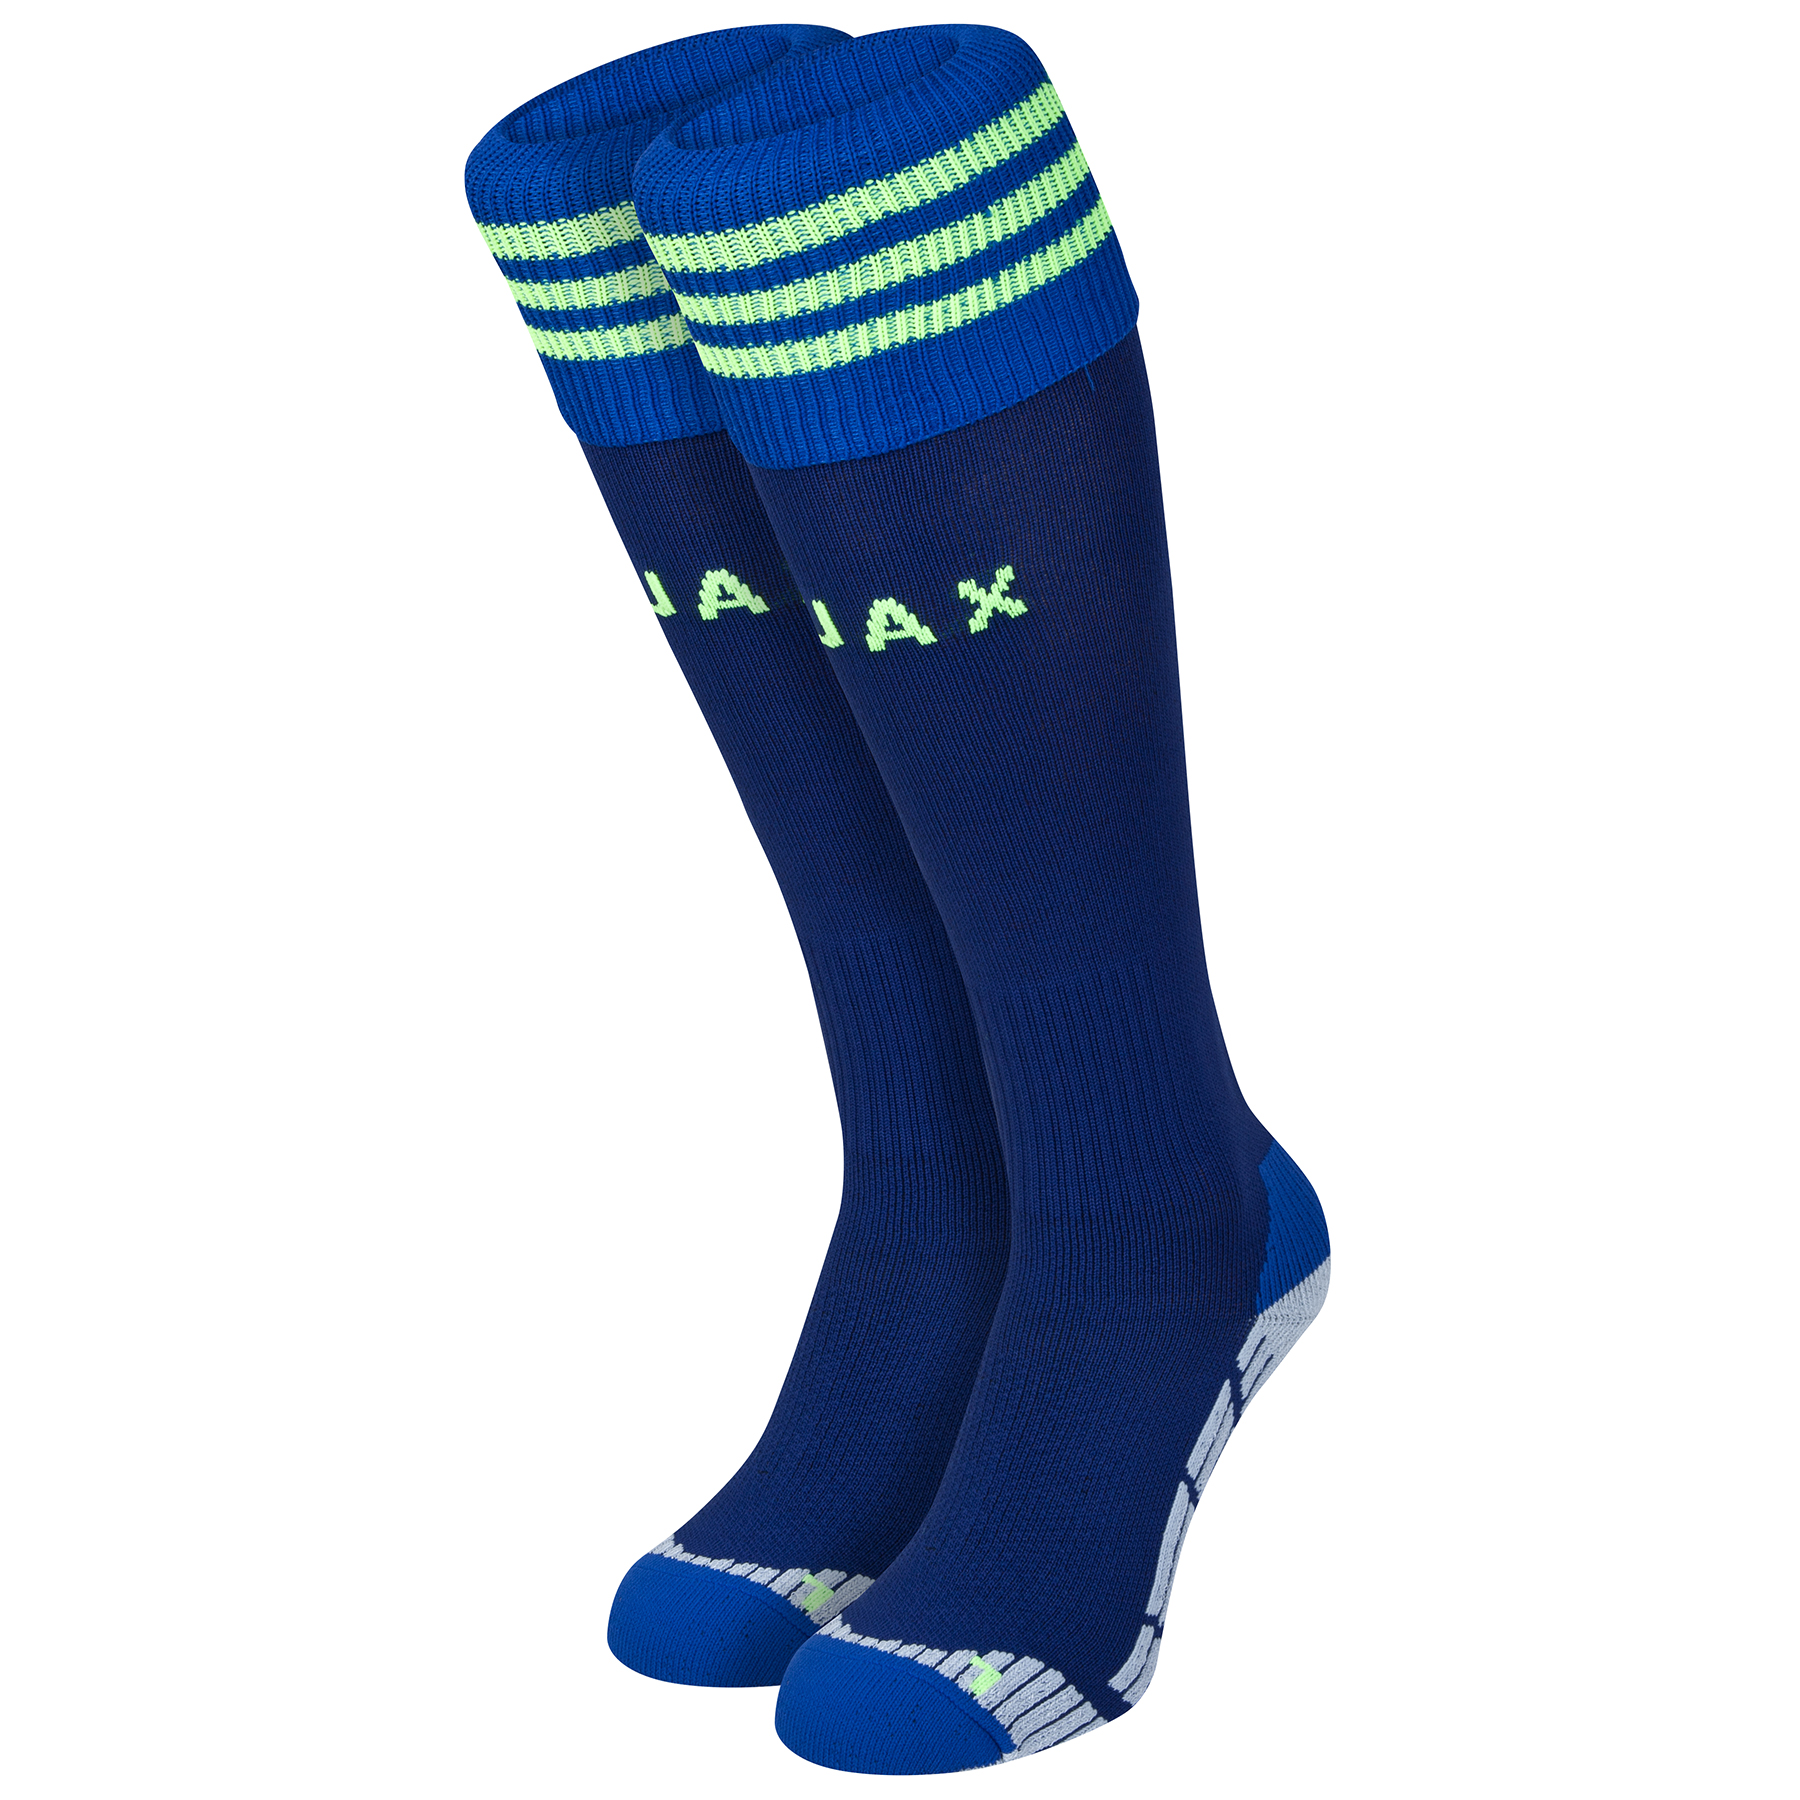 Ajax Away Sock 2014/15